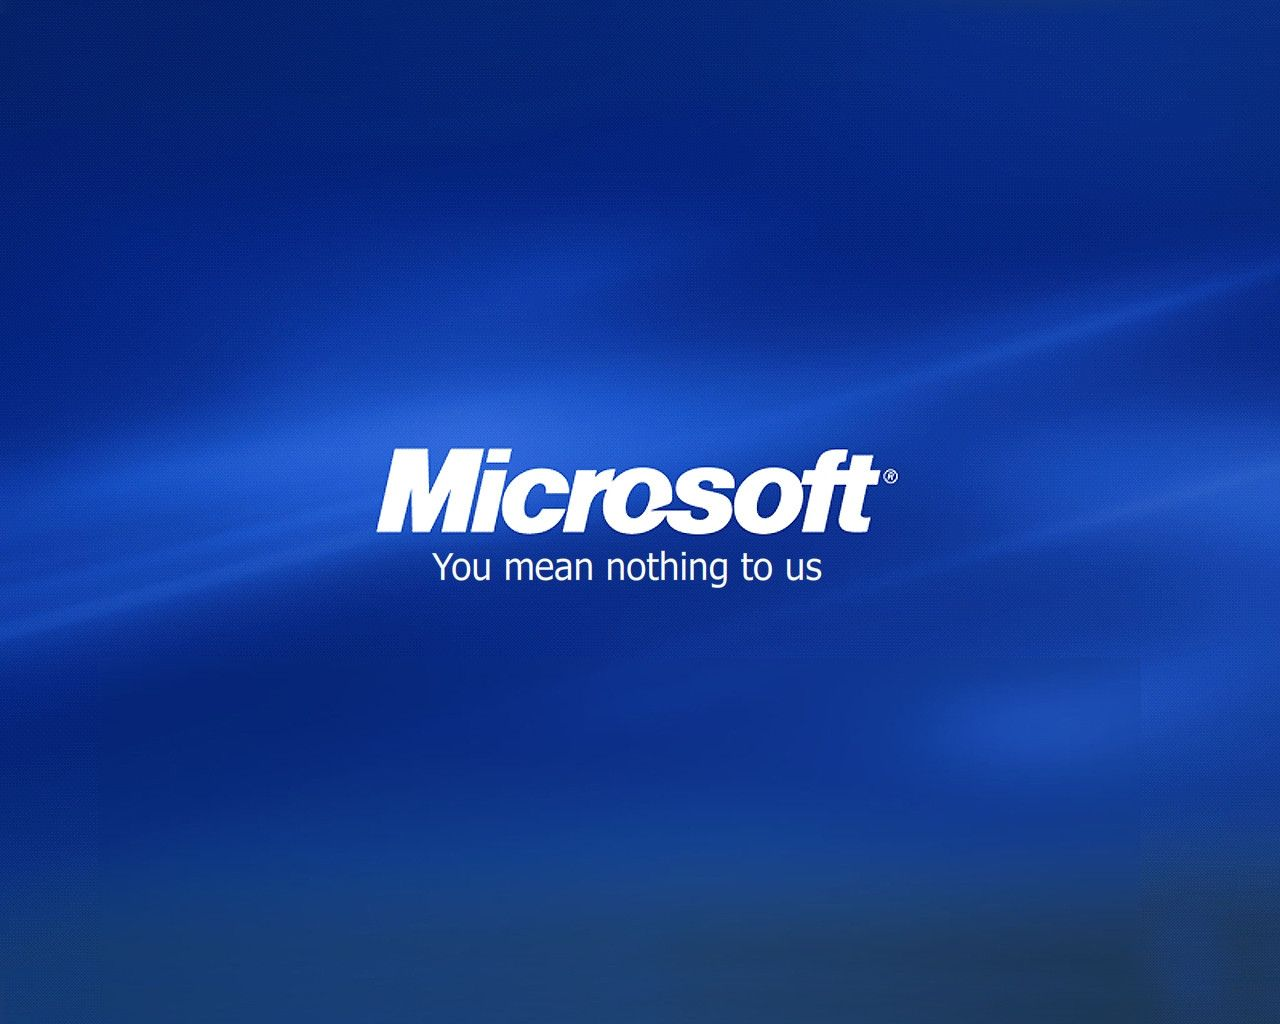 microsoft wallpaper 1280x1024